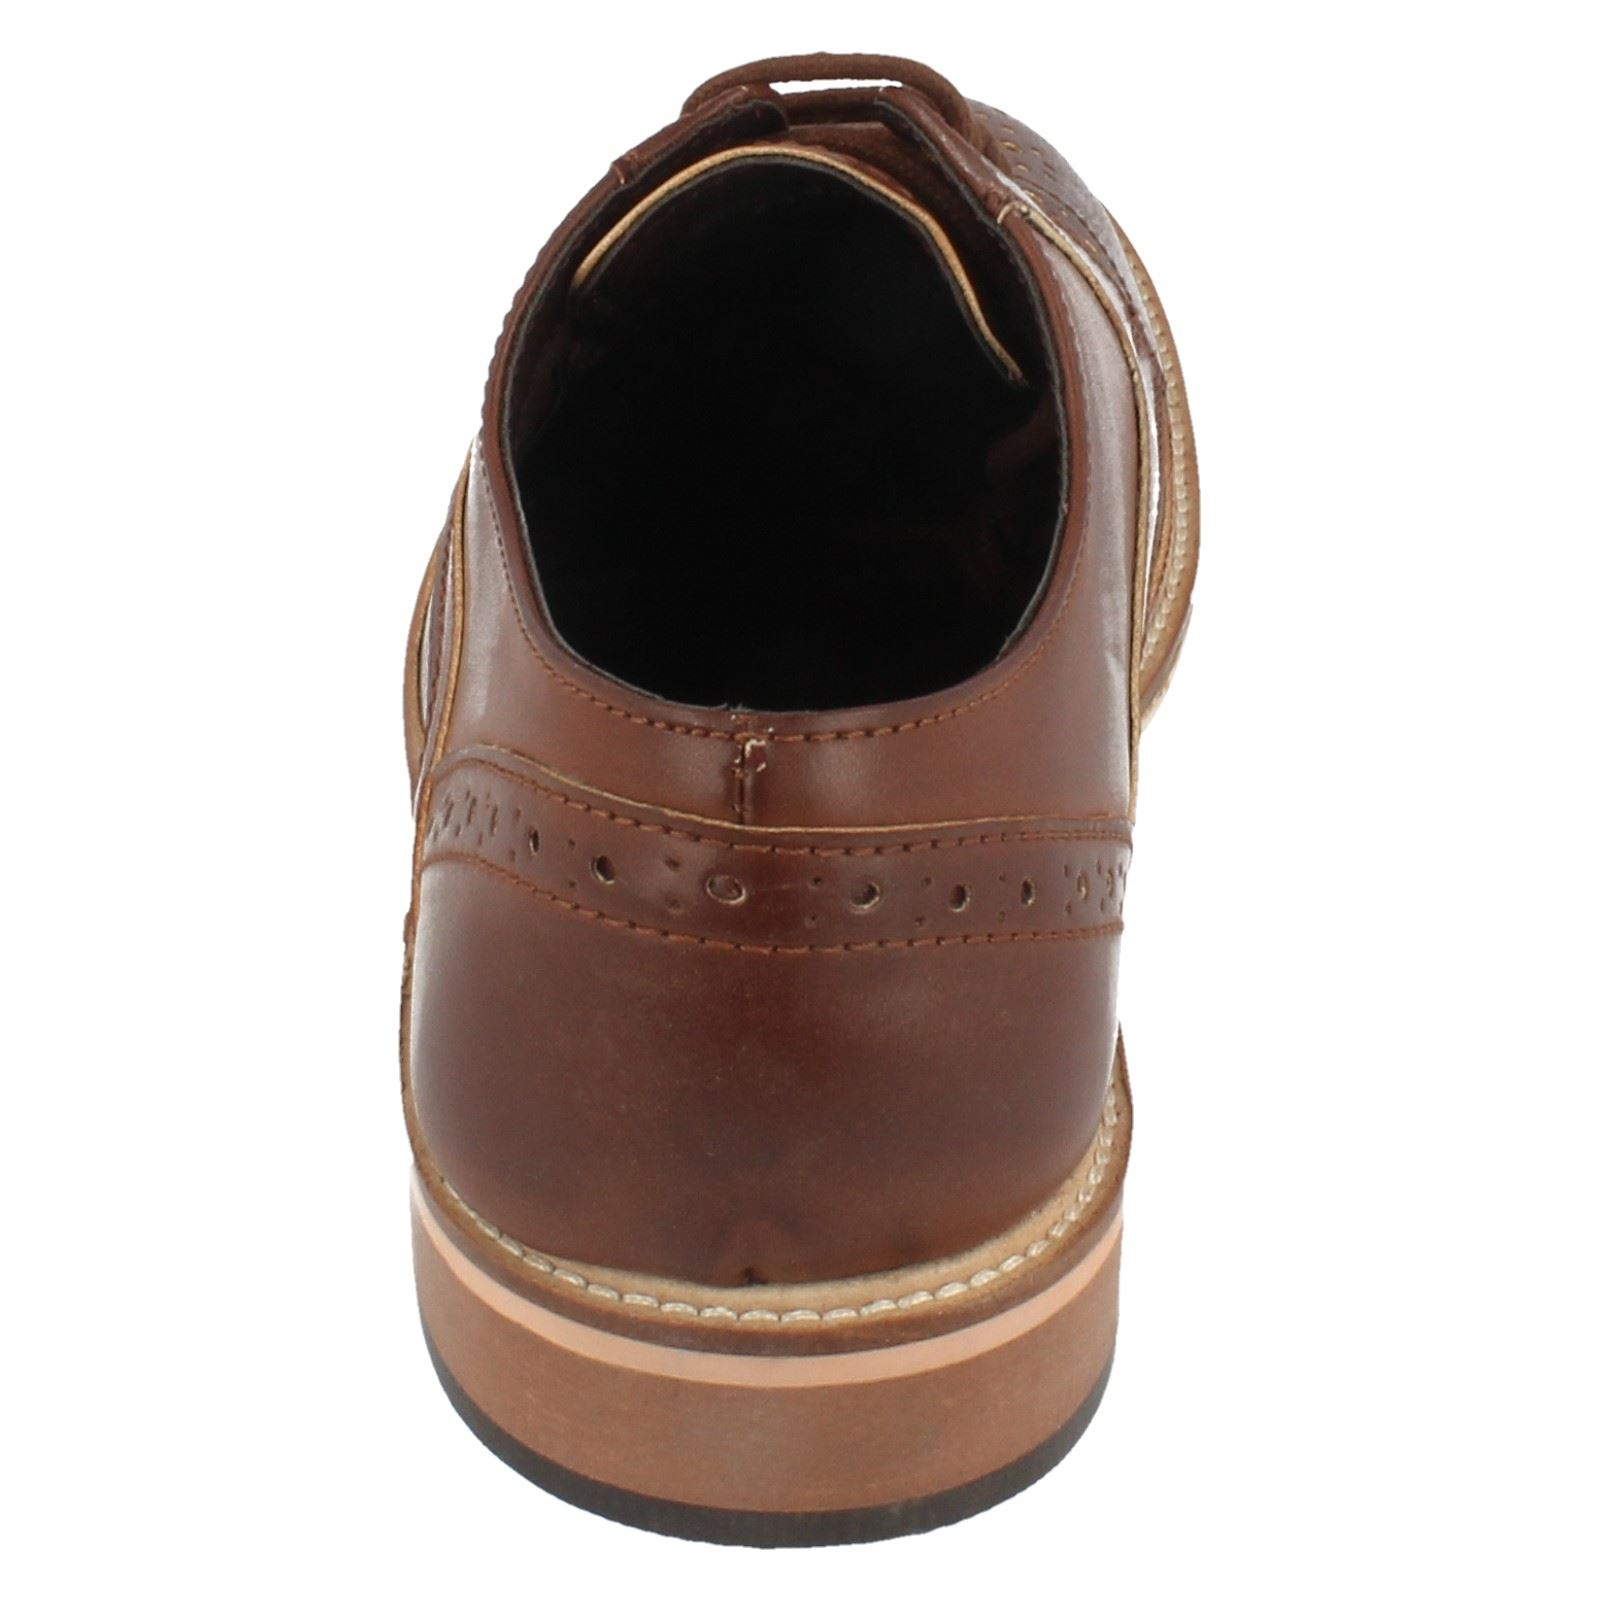 Mens Lambretta Brogue Lace Up Shoe The Style 21004 ~ N